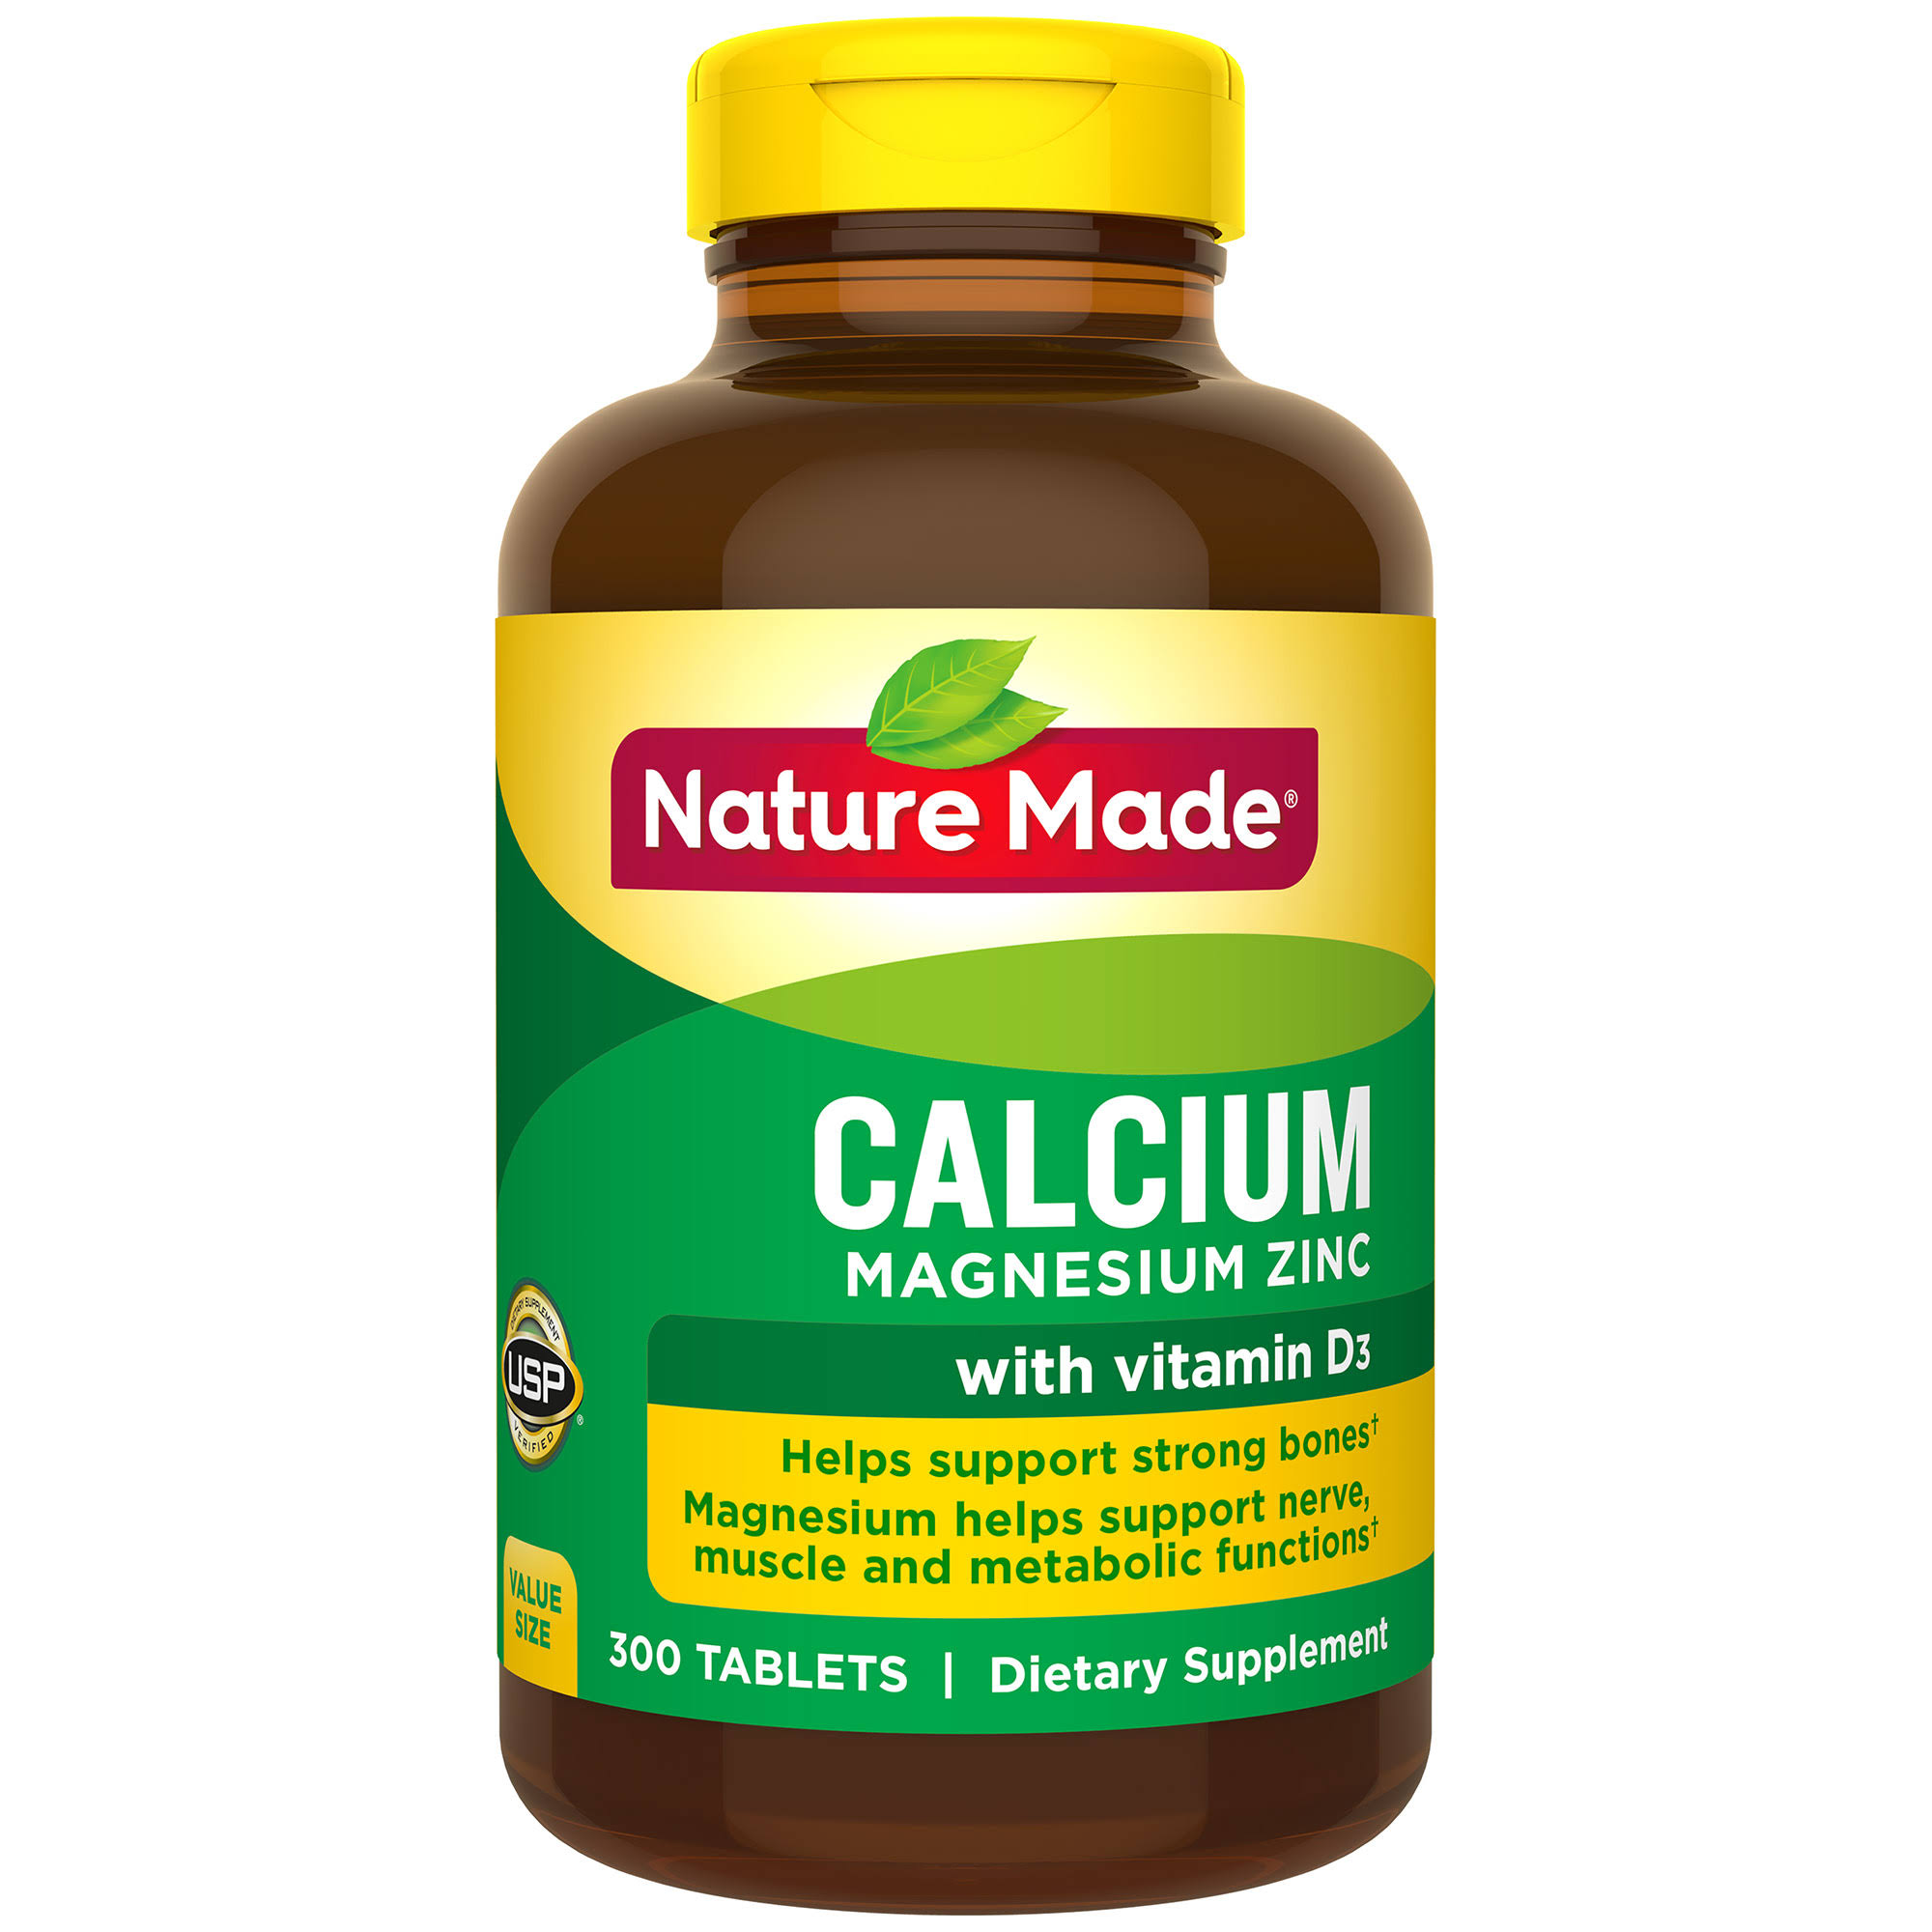 Nature Made Calcium Magnesium Zinc - 300 Capsules